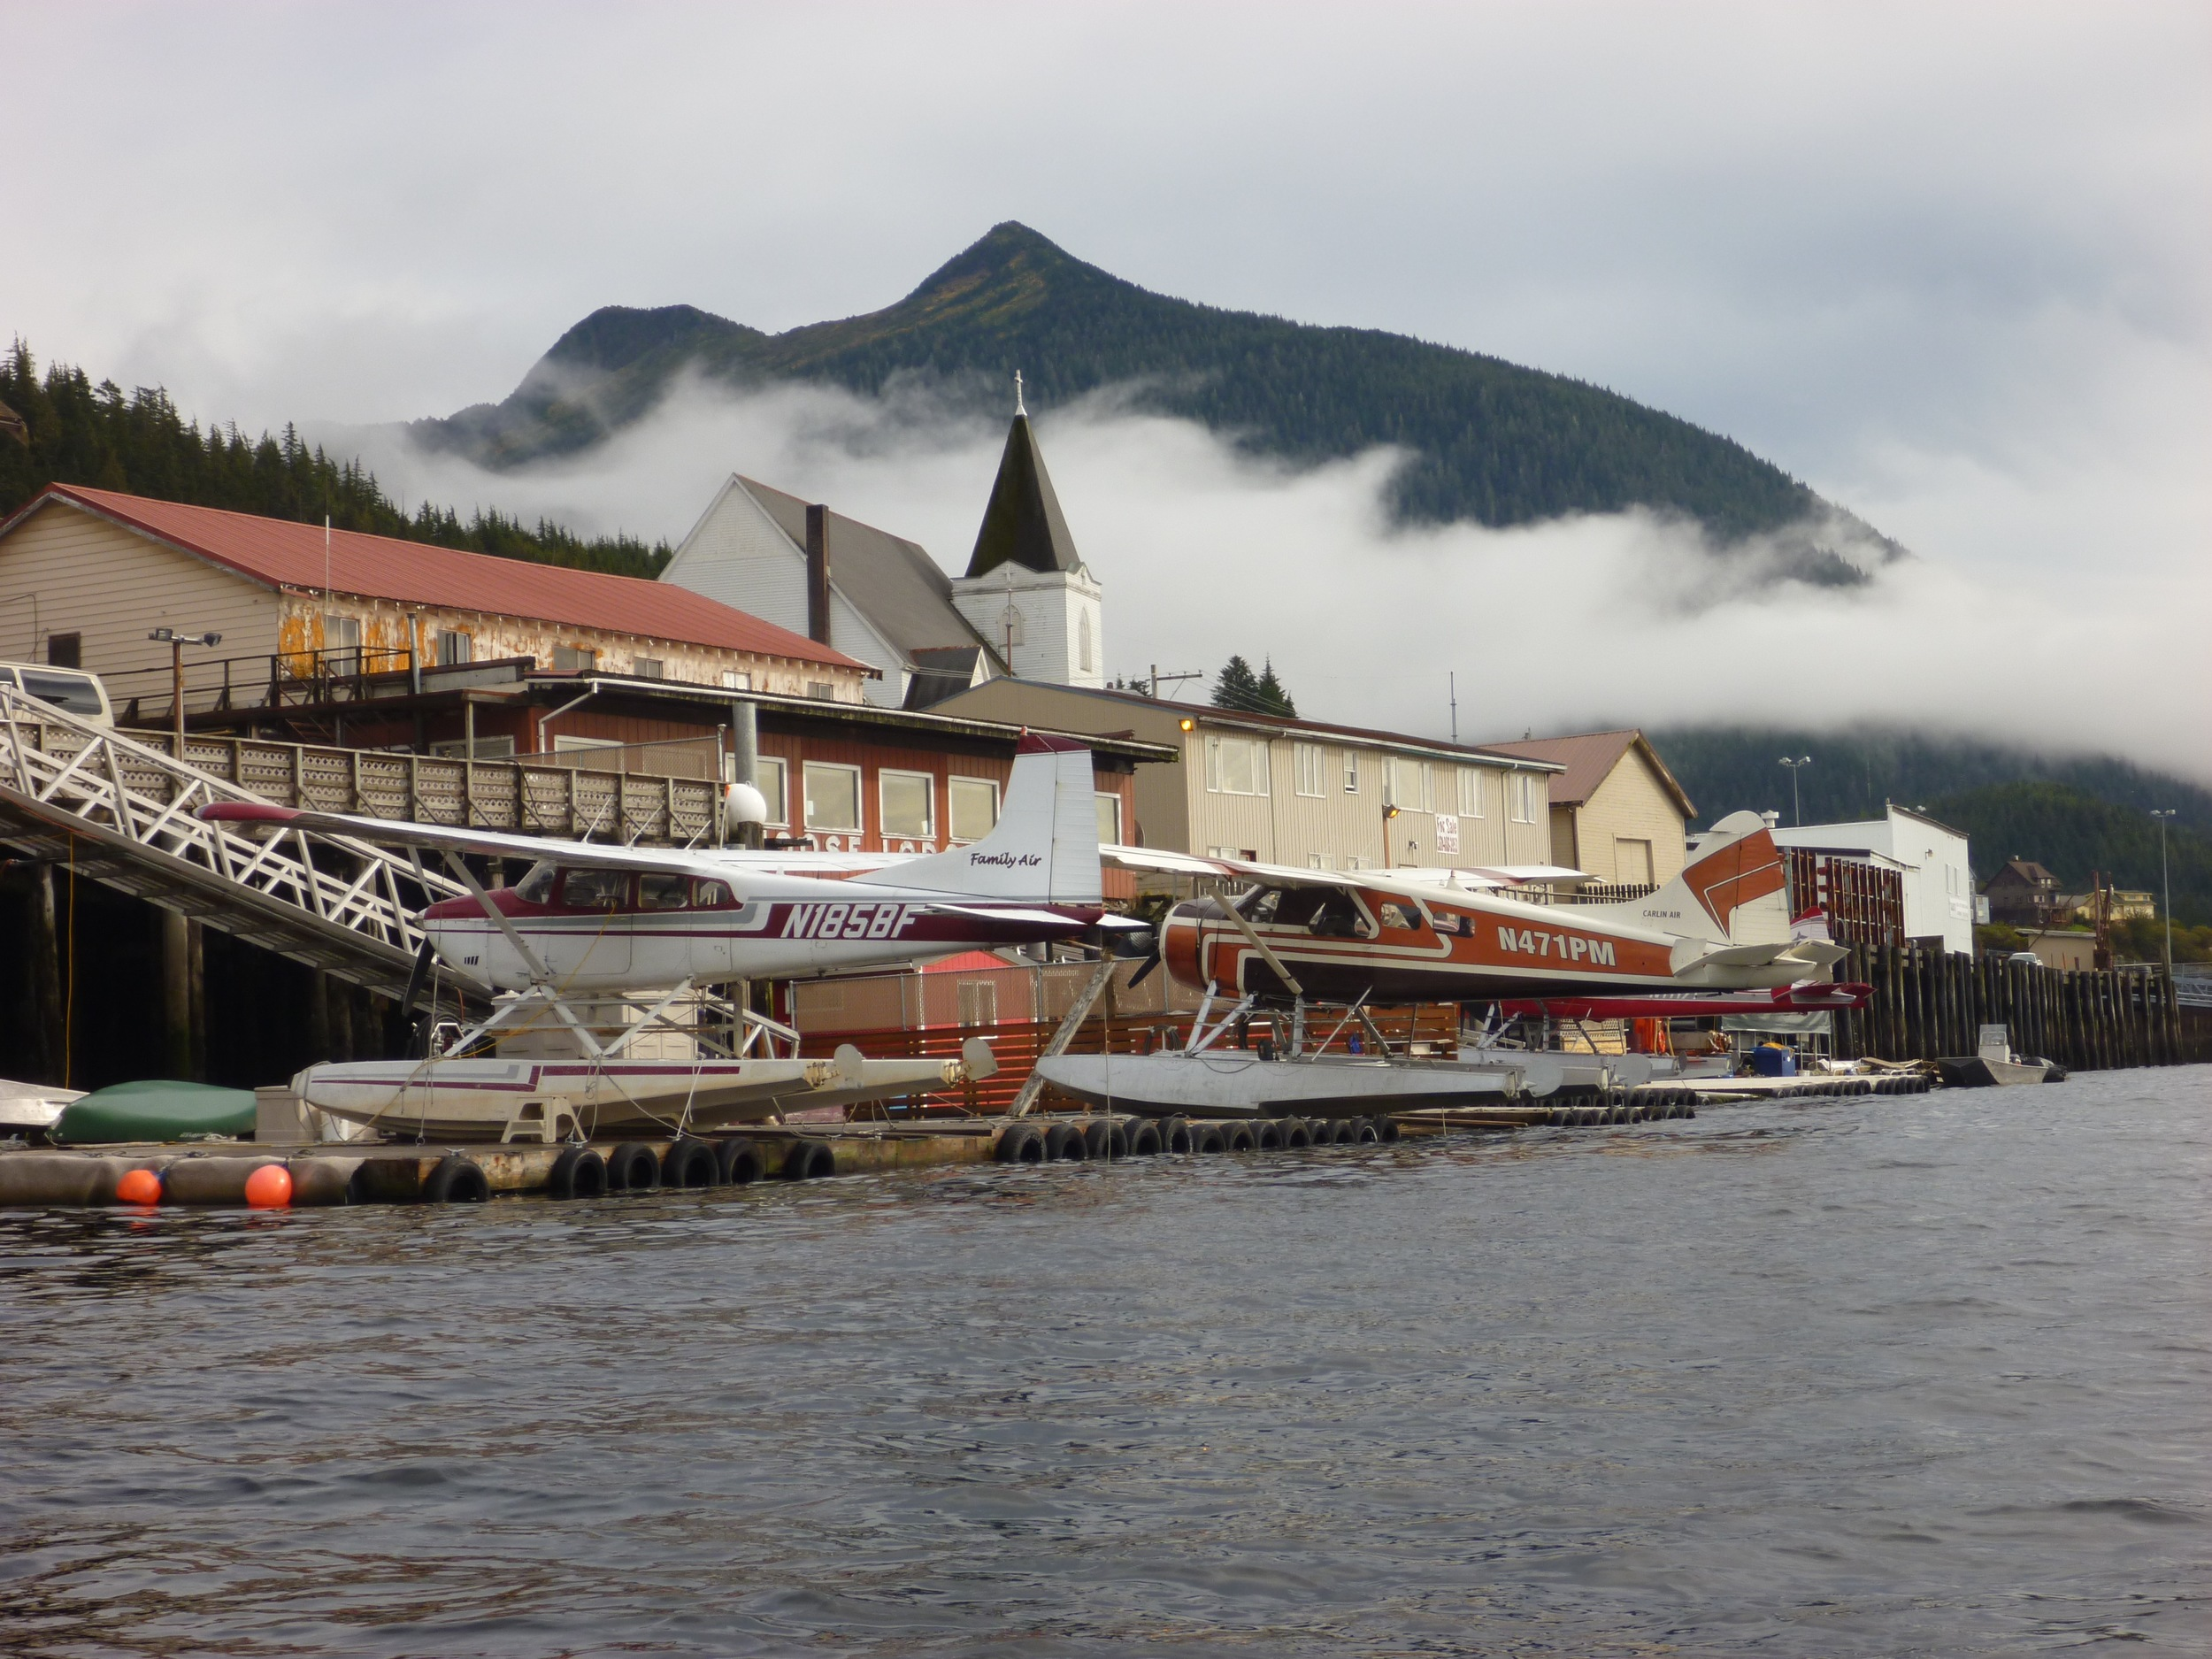 Return to Ketchikan by Plane